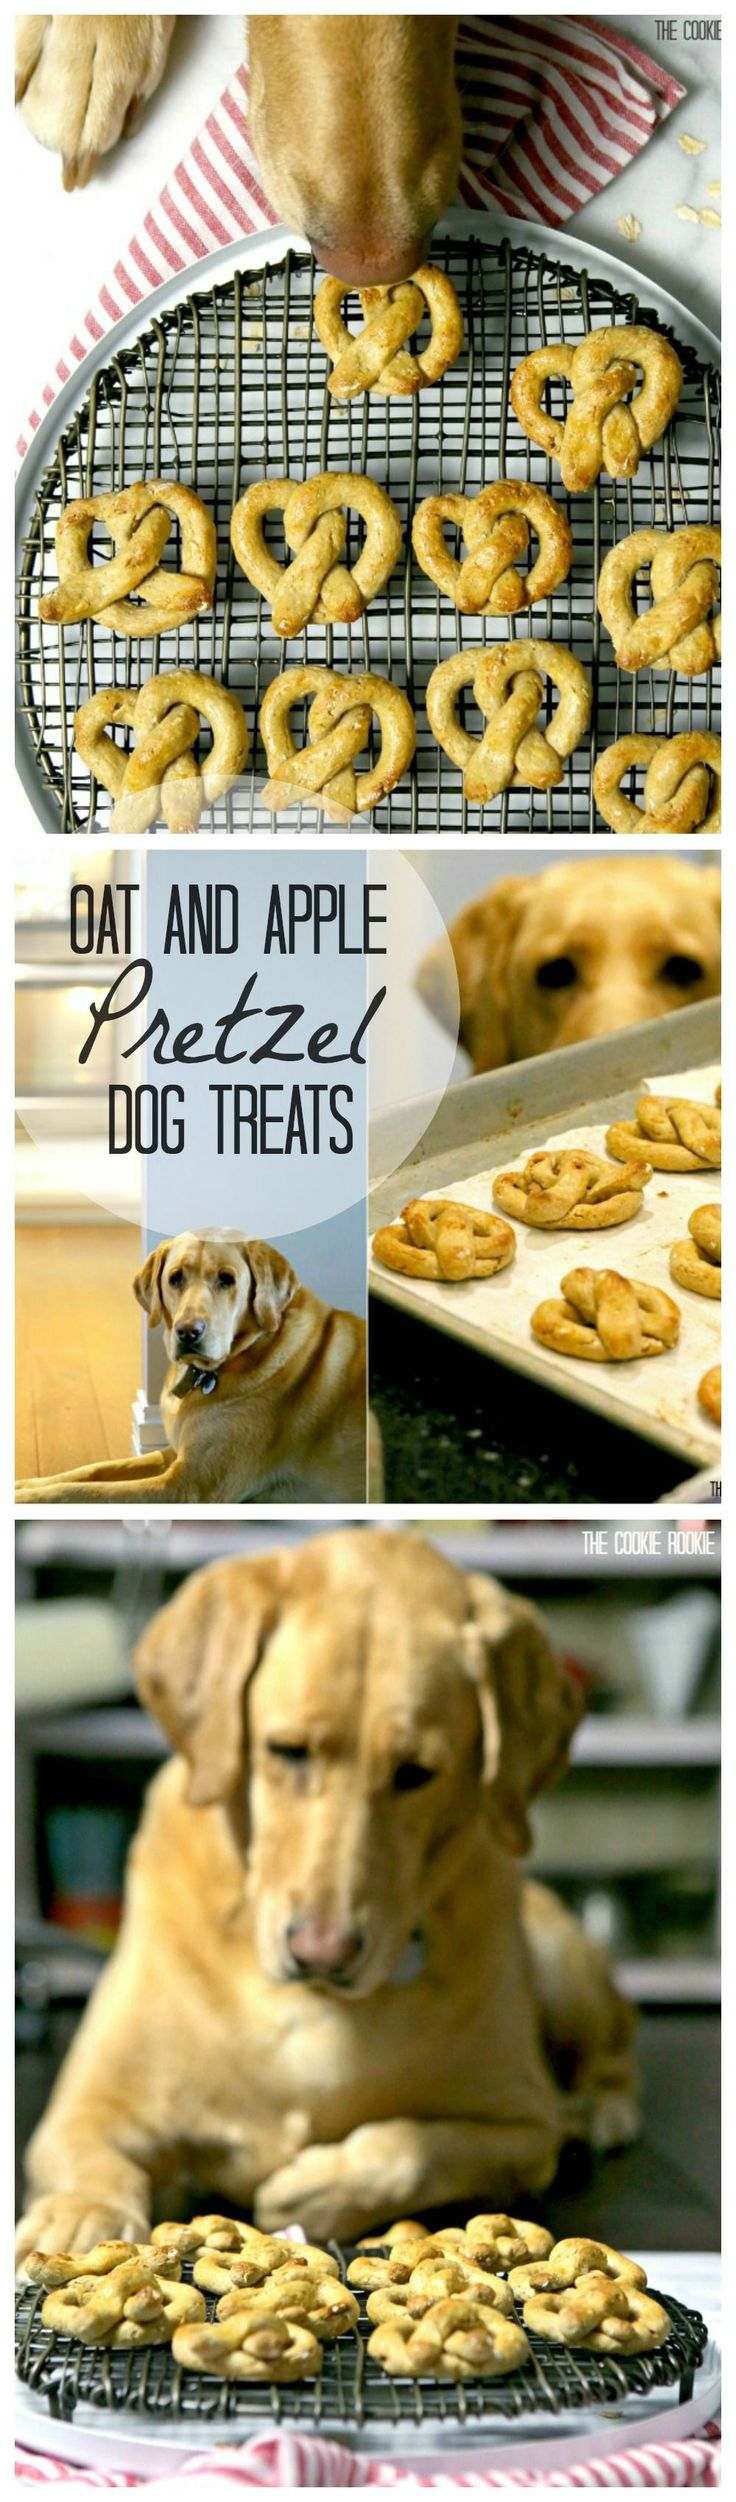 best itus a dogus life images on pinterest dog treats pets and